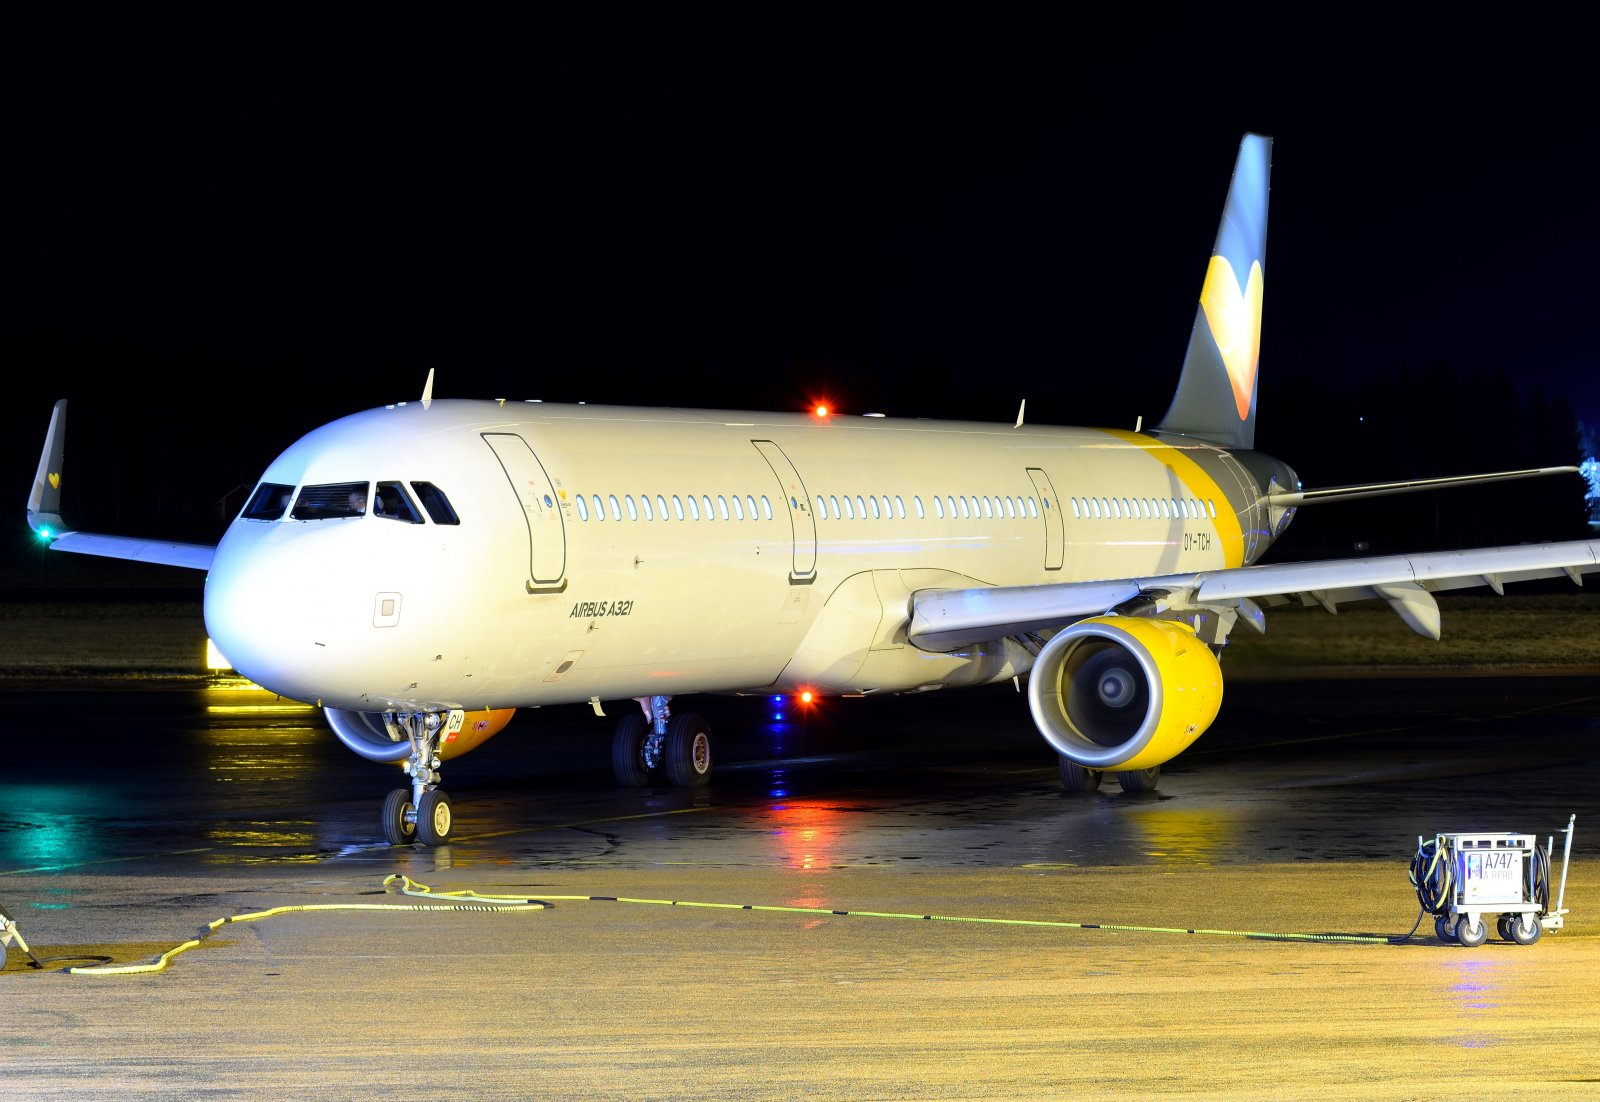 OY-TCH - Airbus A321-211 - Sunclass Airlines (ent. Thomas Cook Airlines Scandinavia) - 2.1.2020